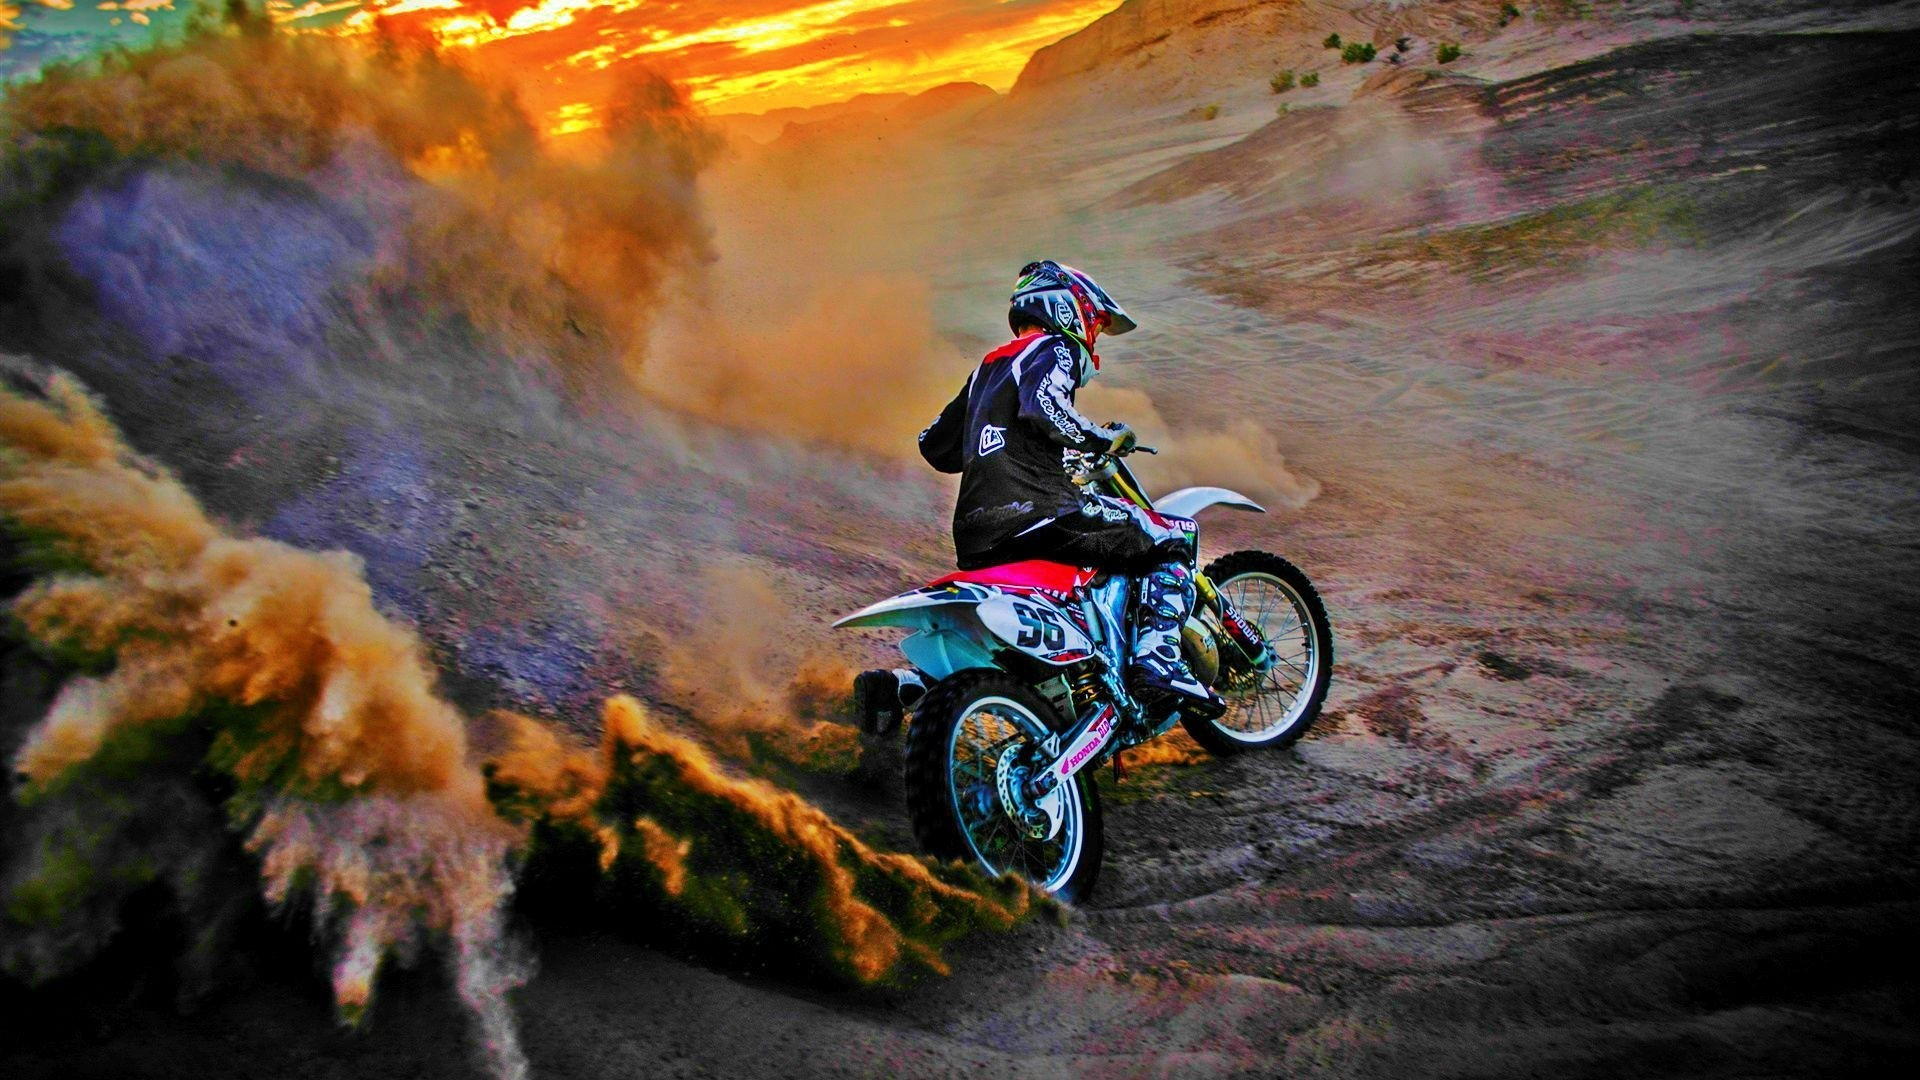 Dirt Bike hd desktop wallpaper